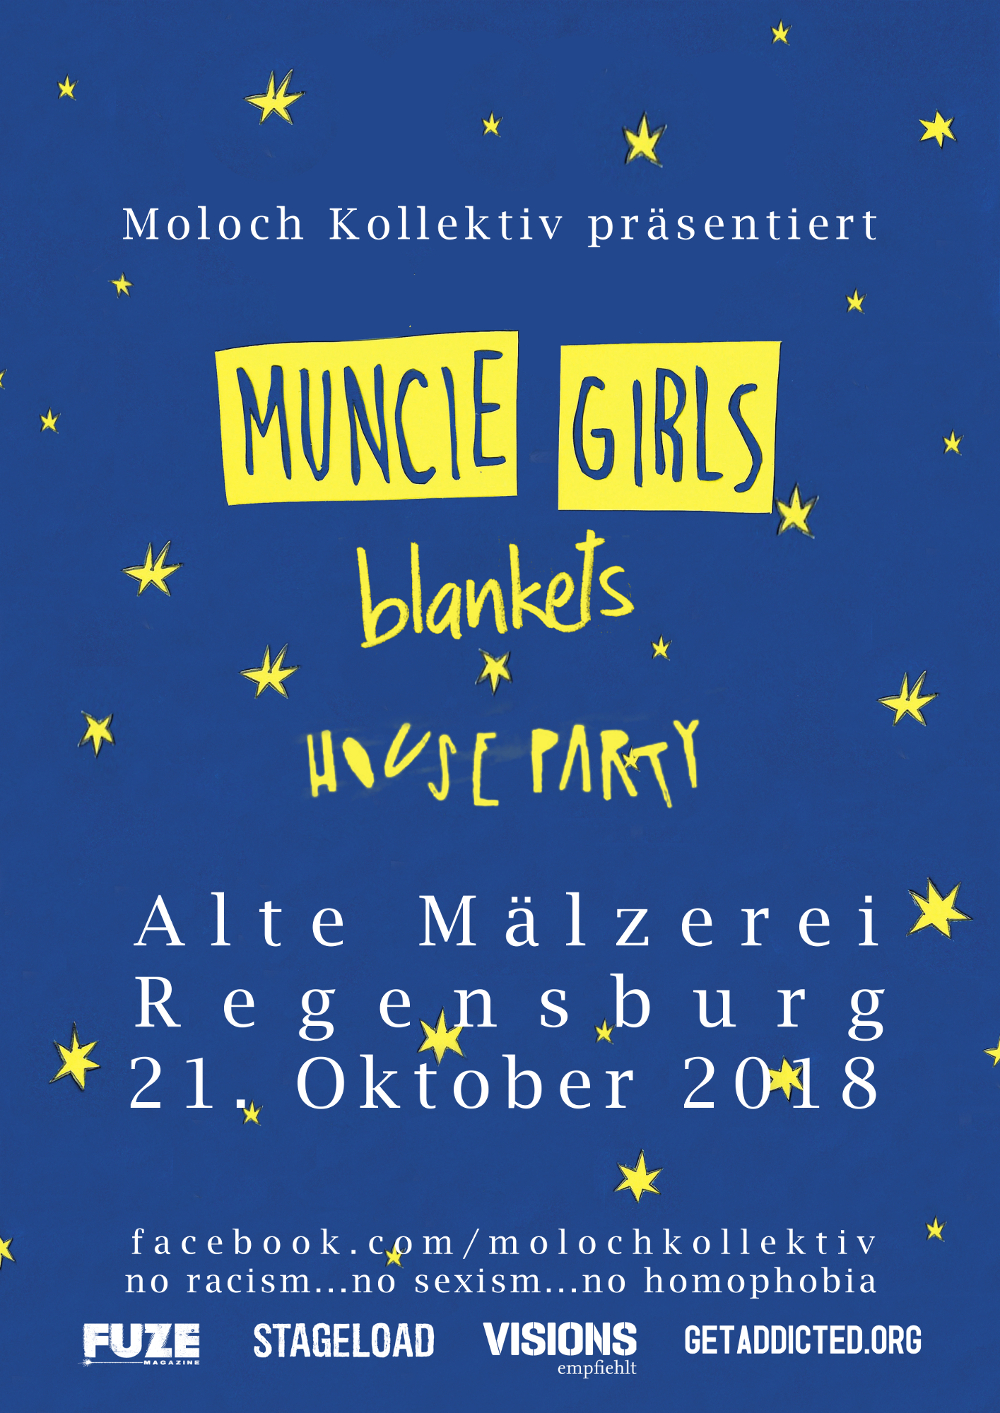 2018-10-21 Muncie Girls + blankets + houseparty flyer